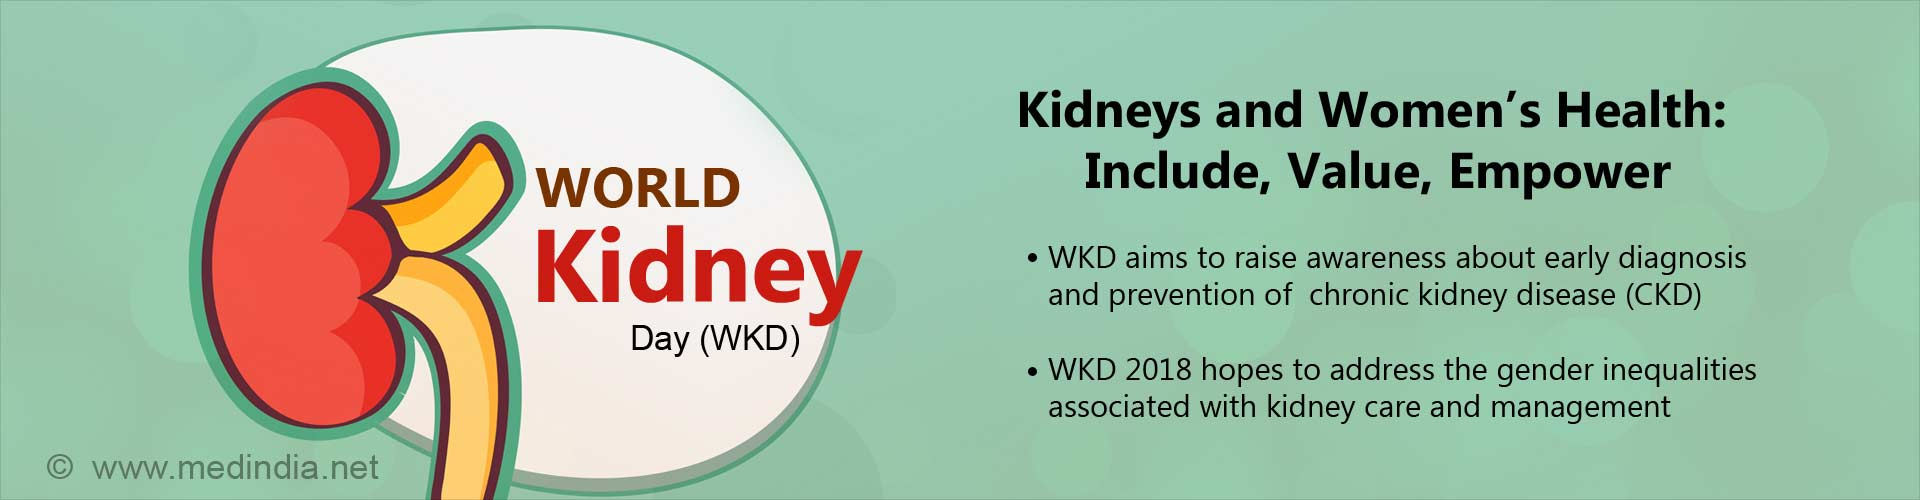 kidneys and women''s health: include, value, empower - WKD aims to raise awareness about early diagnosis and prevention of chronic kidney disease (CKD) - WKD 2018 hopes to address the gender inequalities associated with kidney care and management